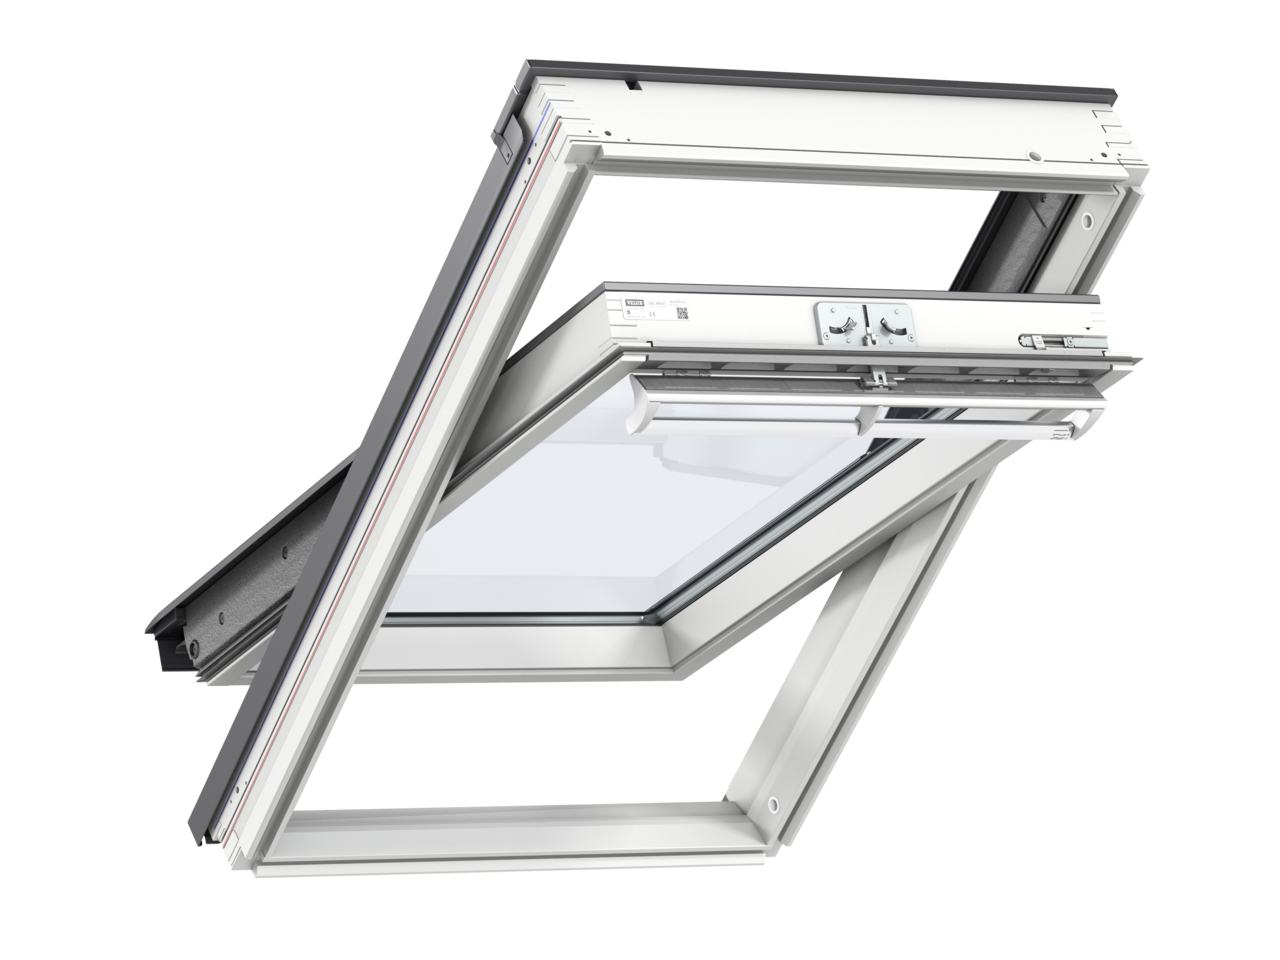 Velux GGL SK06 1140 x 1180mm Centre Pivot 60Pane Roof Window - White Painted